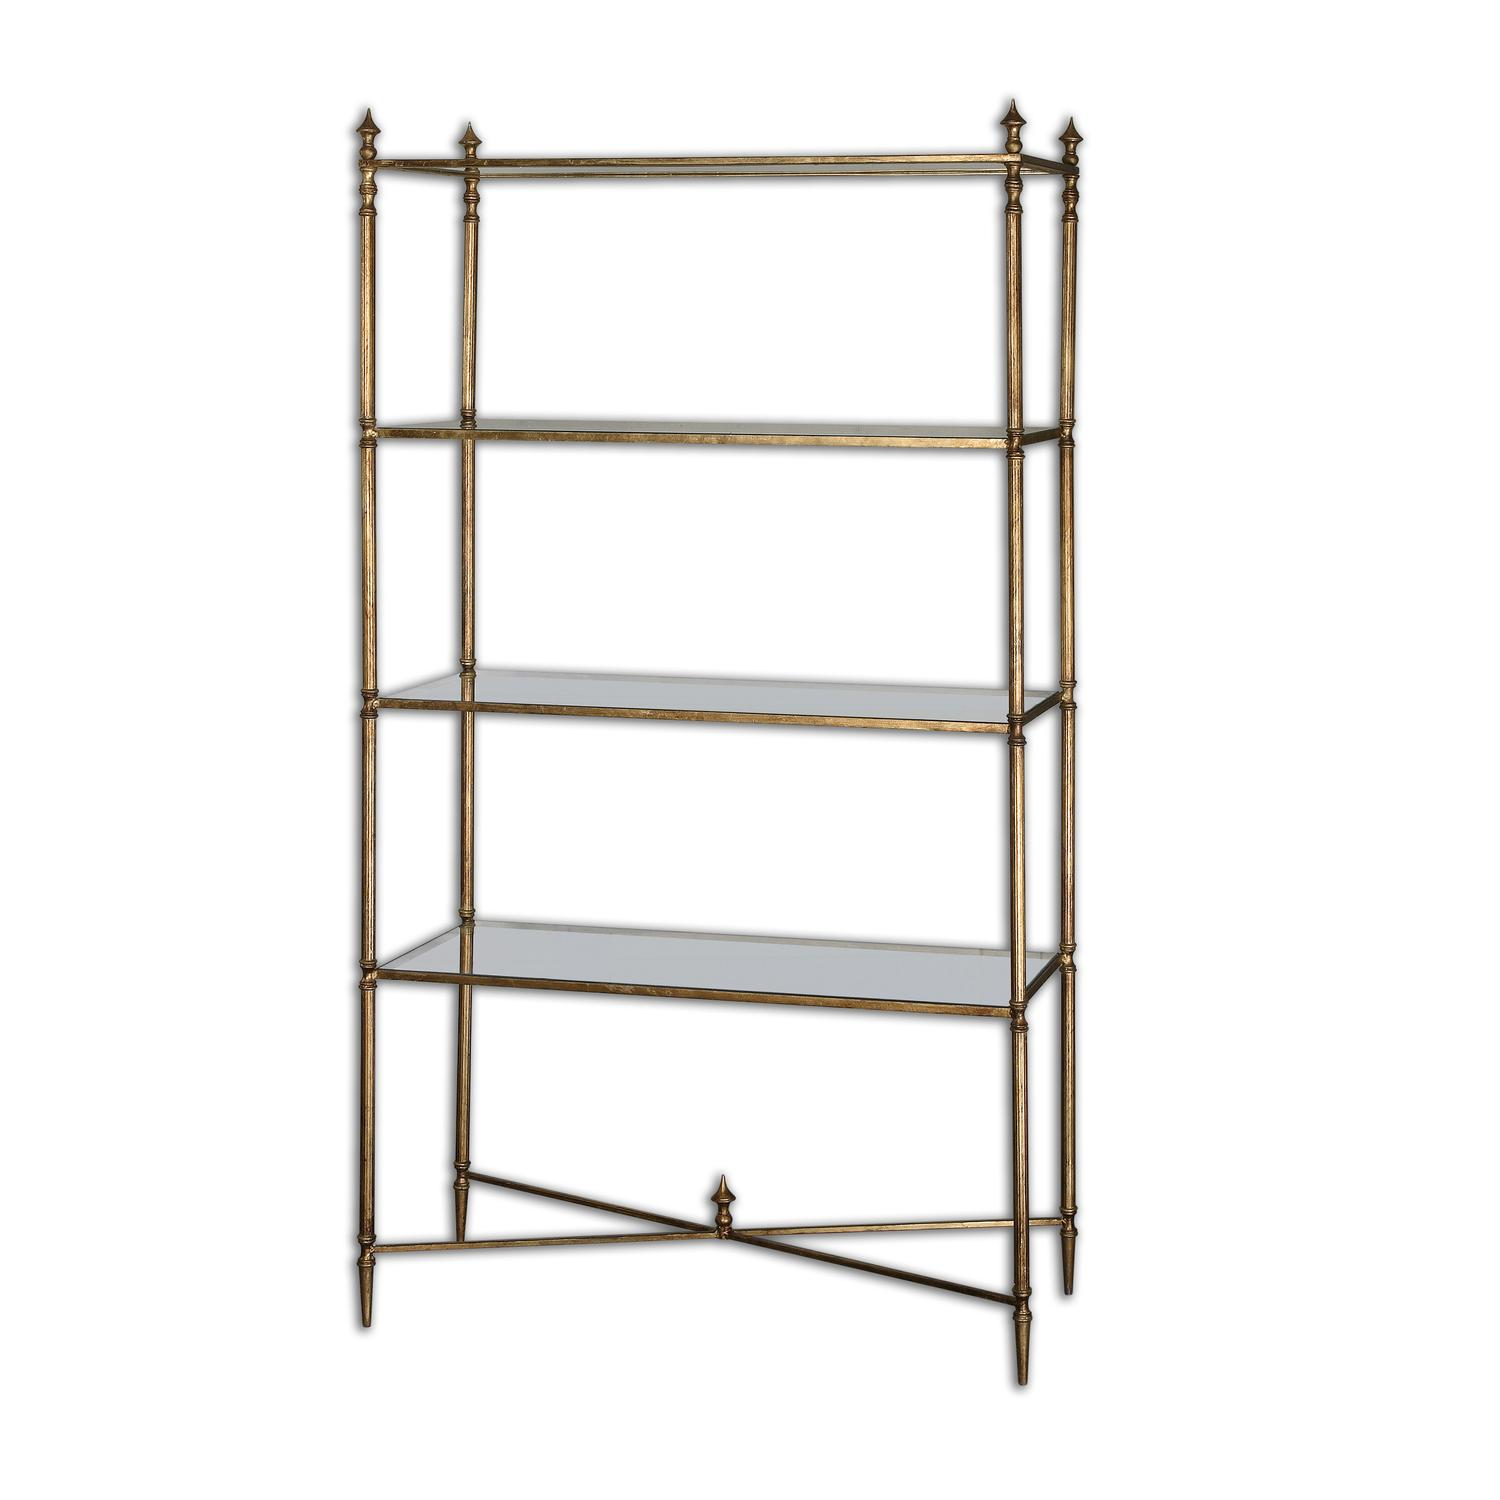 "62"" Collier Antiqued Gold Leaf & Tempered Glass Etagere Display Shelves by Diva At Home"